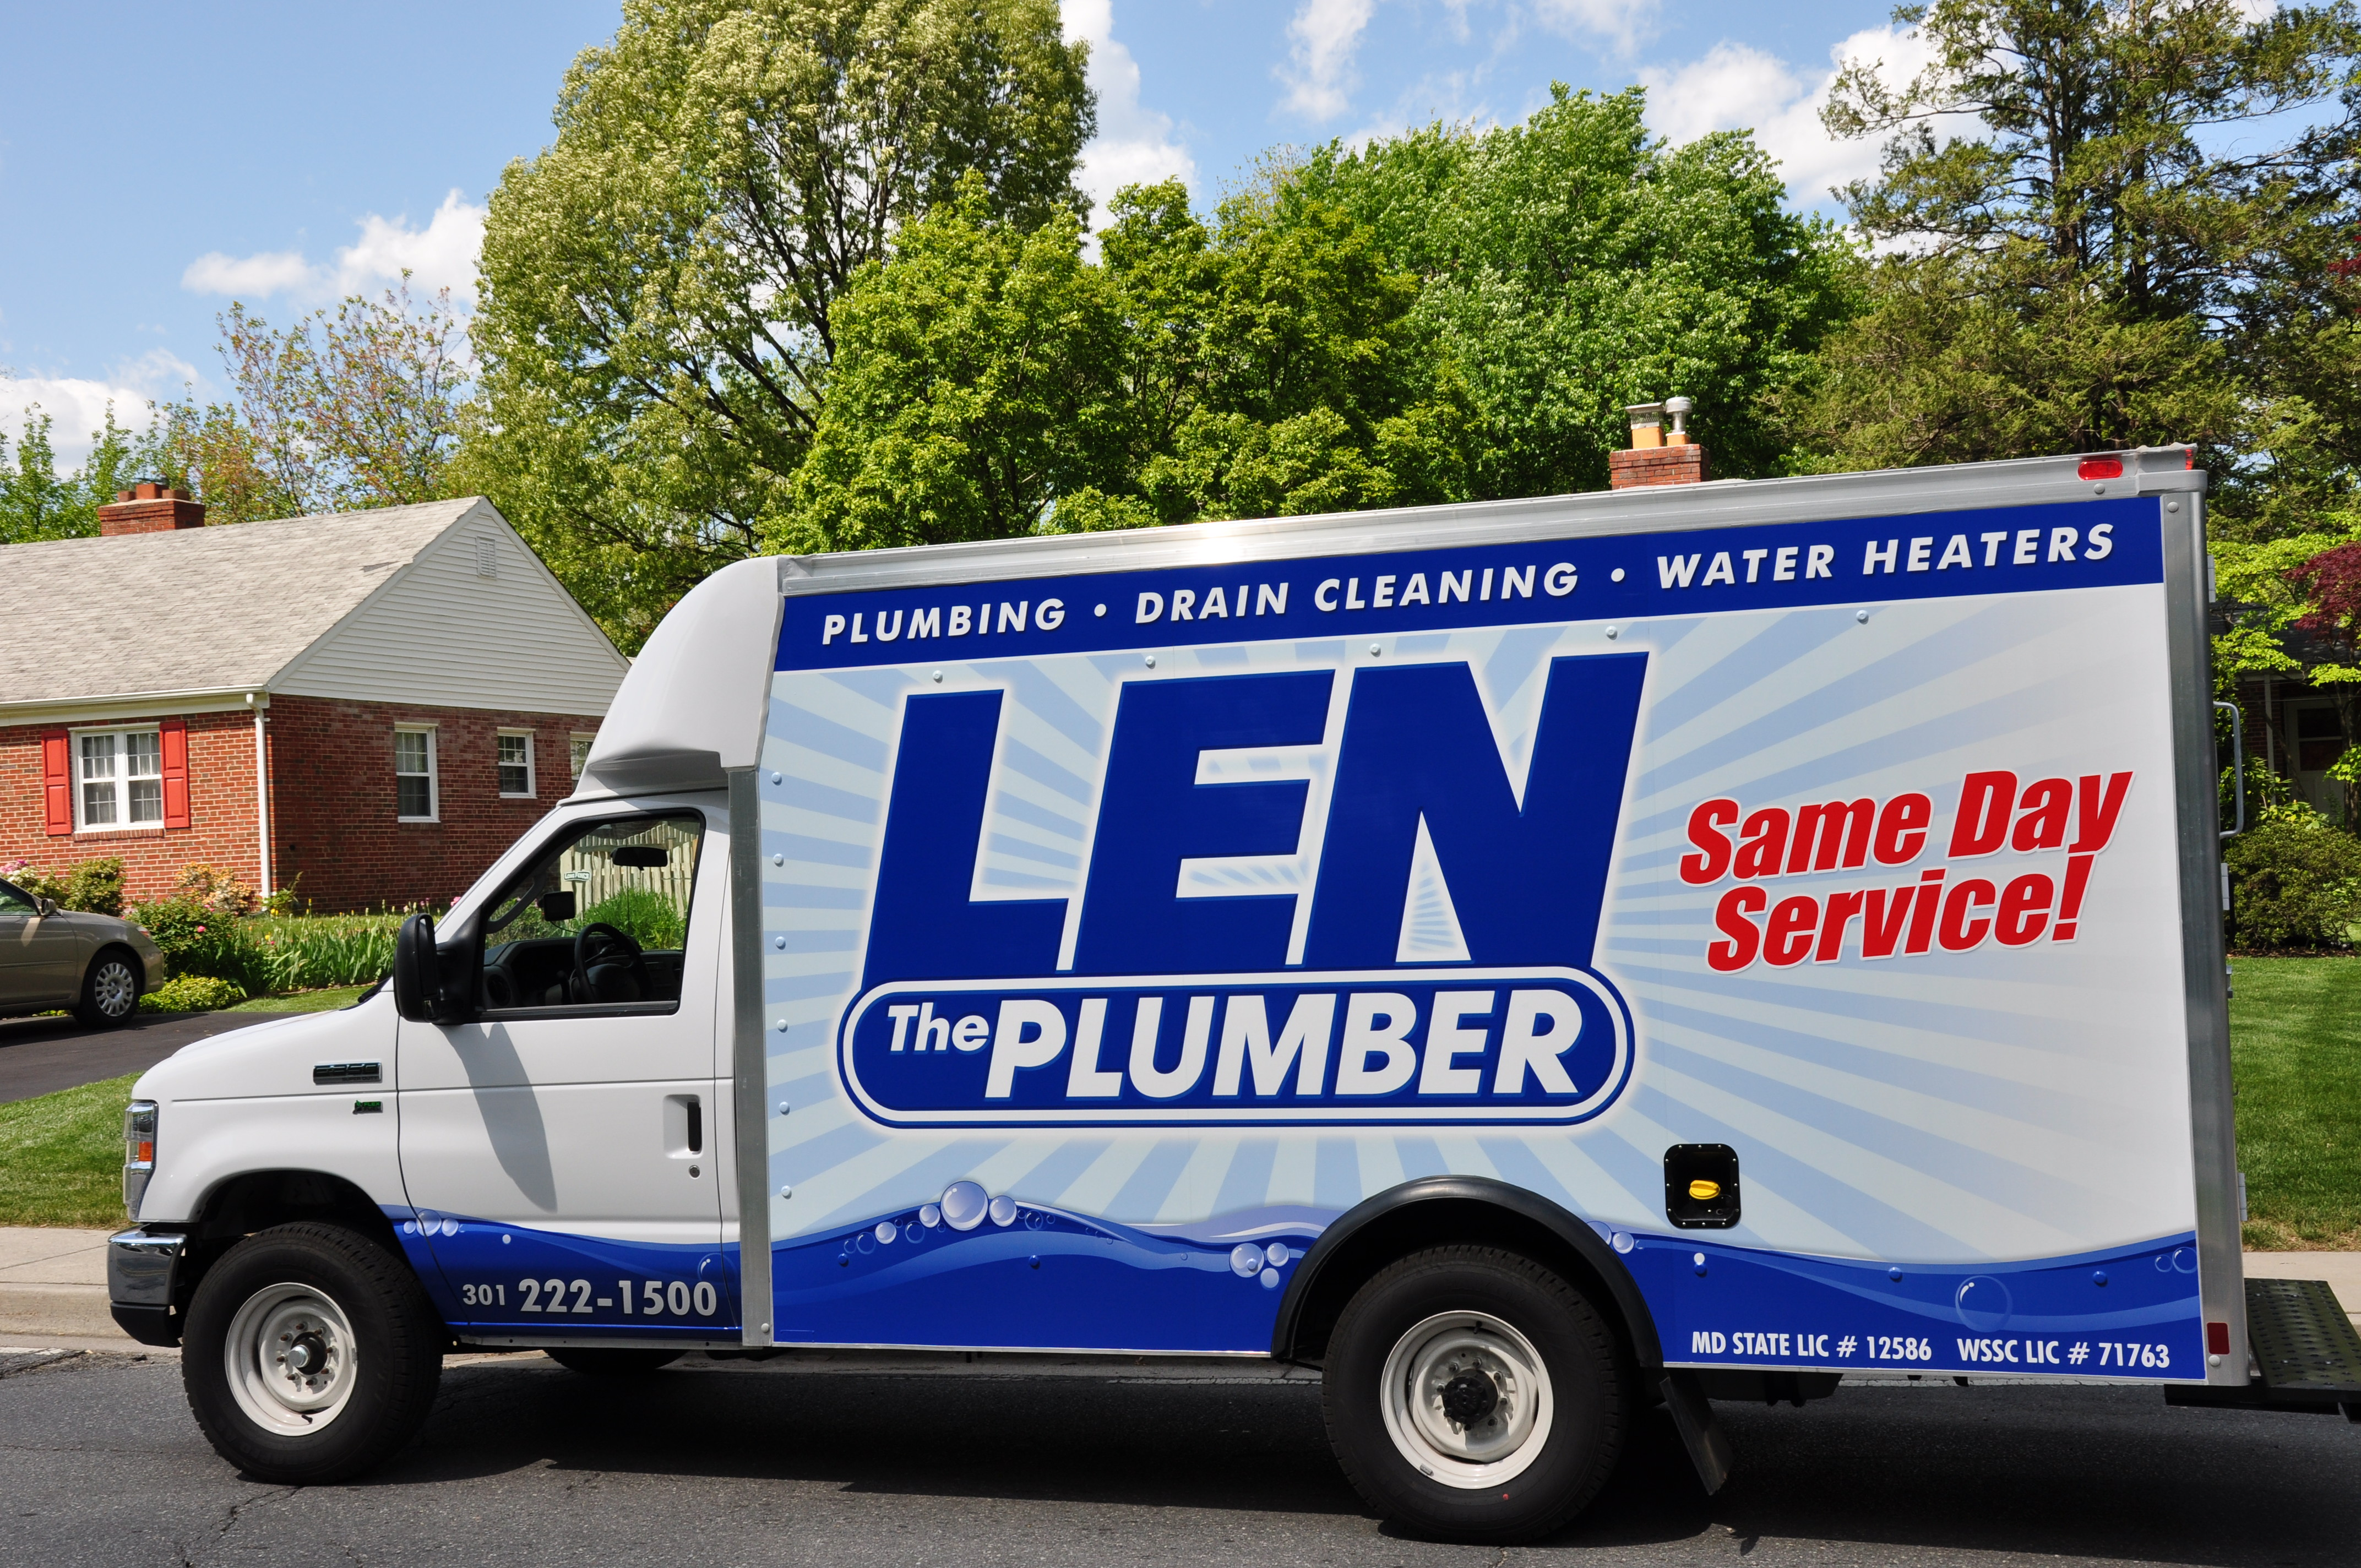 companies plumbing me matchfit near leave plumbers reply cancel competition a